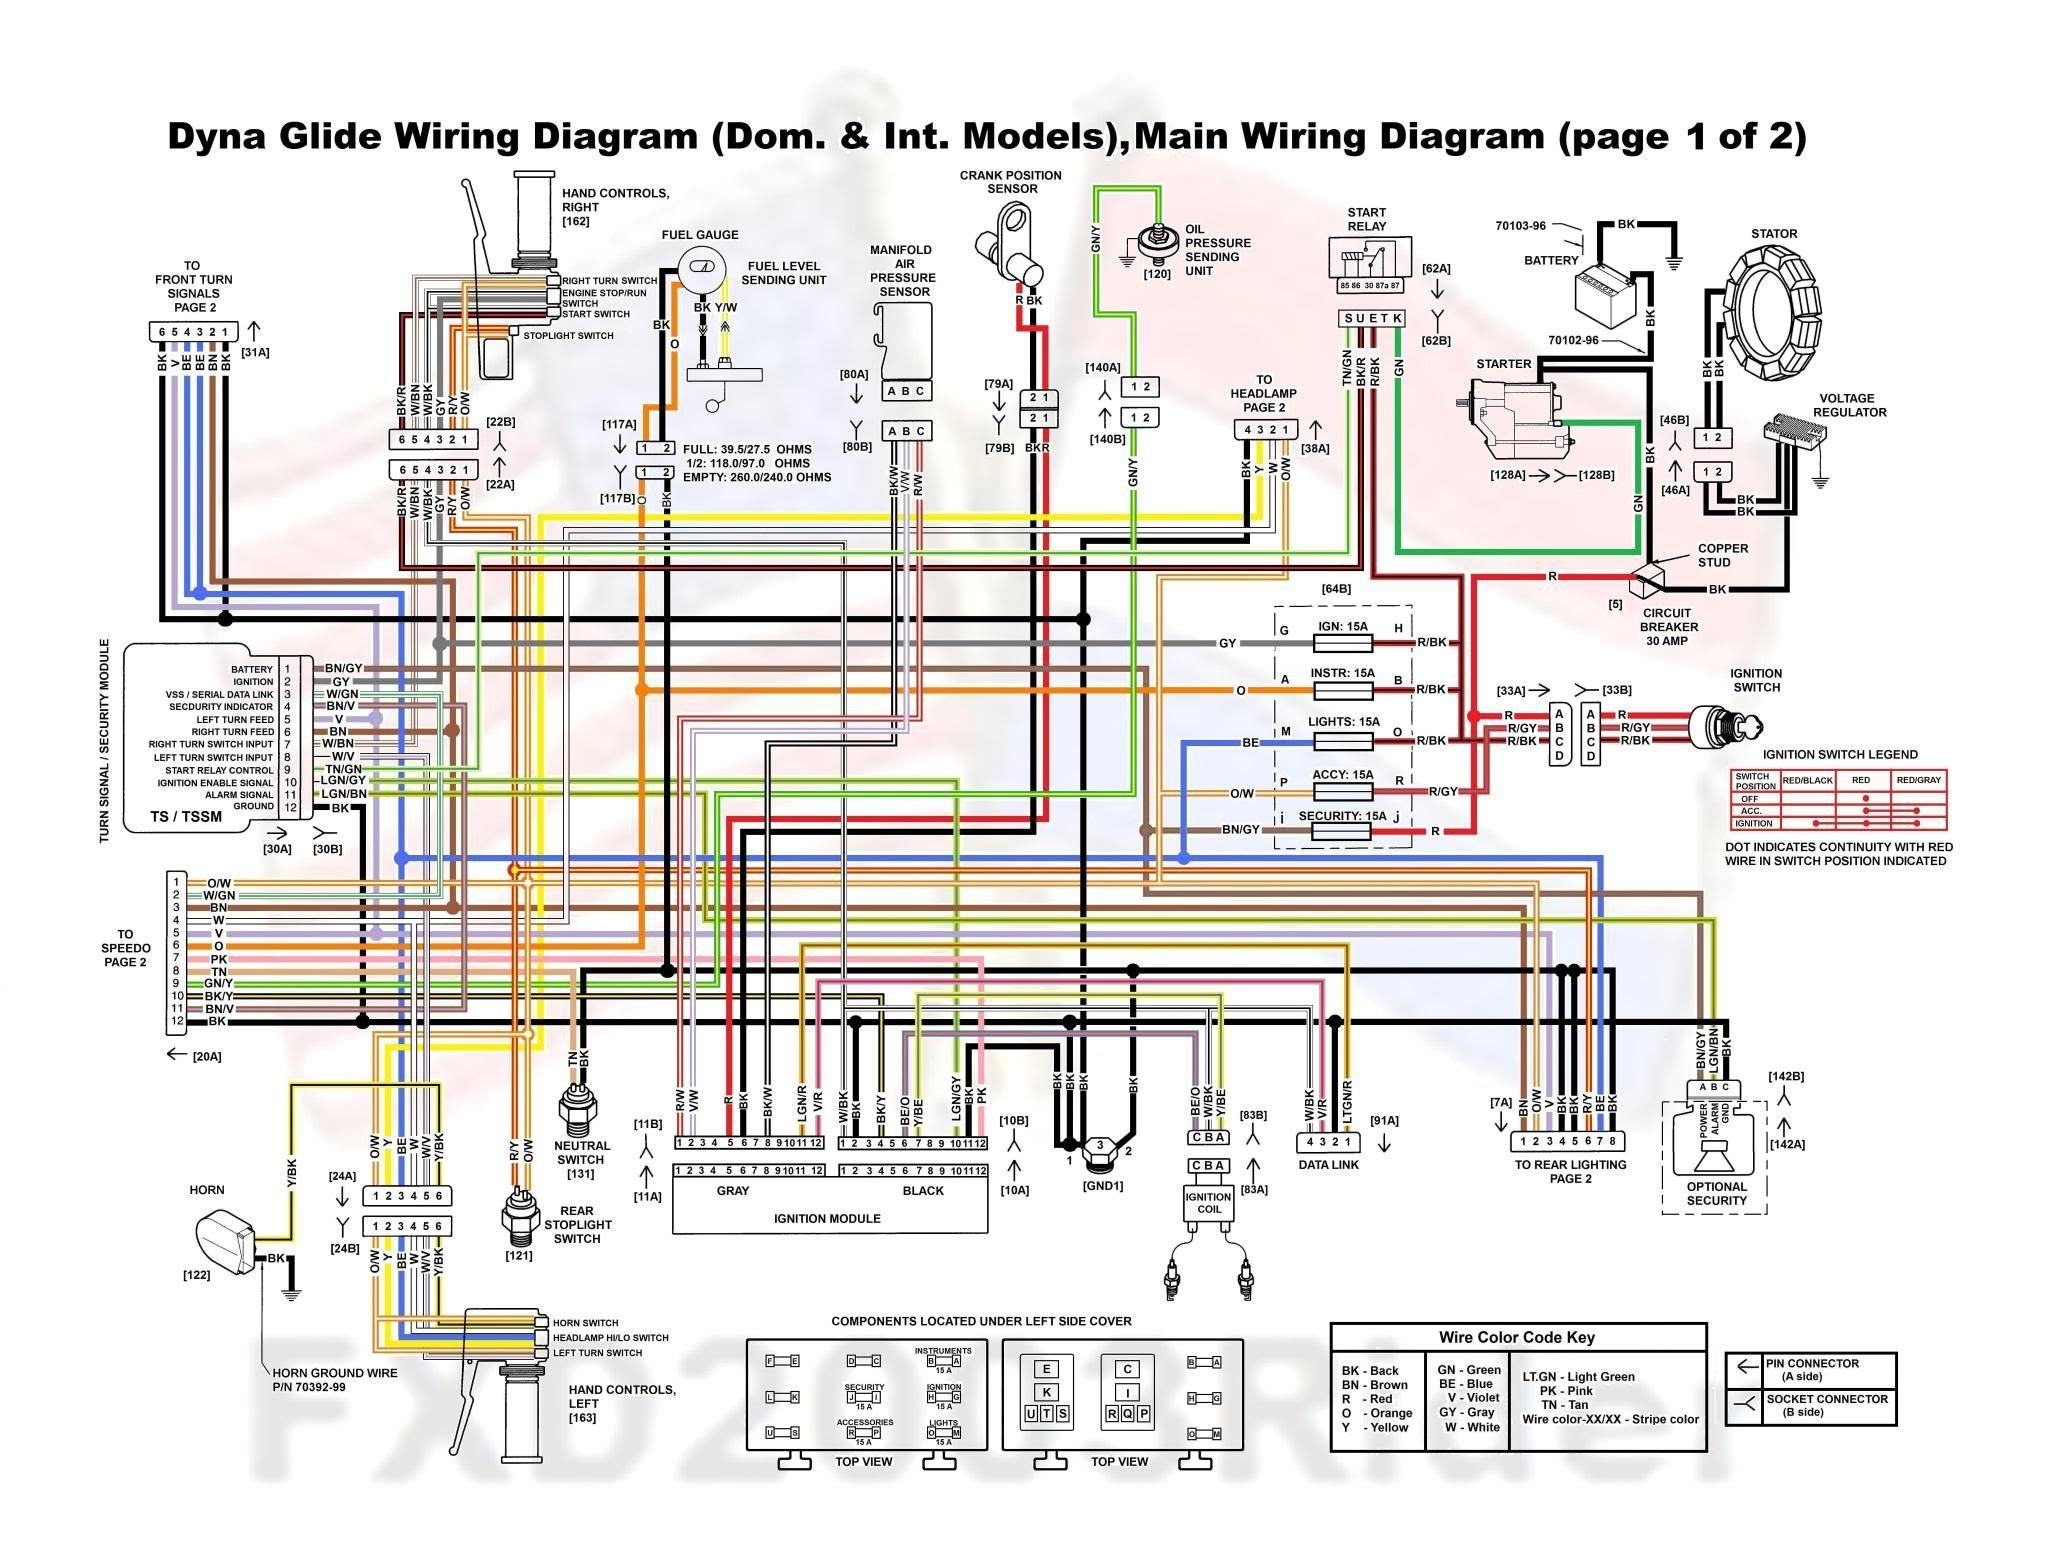 Harley Fxd Wiring Diagram - Wiring Diagram Show teach-combine -  teach-combine.bilancestube.it | 2005 Harley Fxd I Dyna Wiring Diagram |  | teach-combine.bilancestube.it